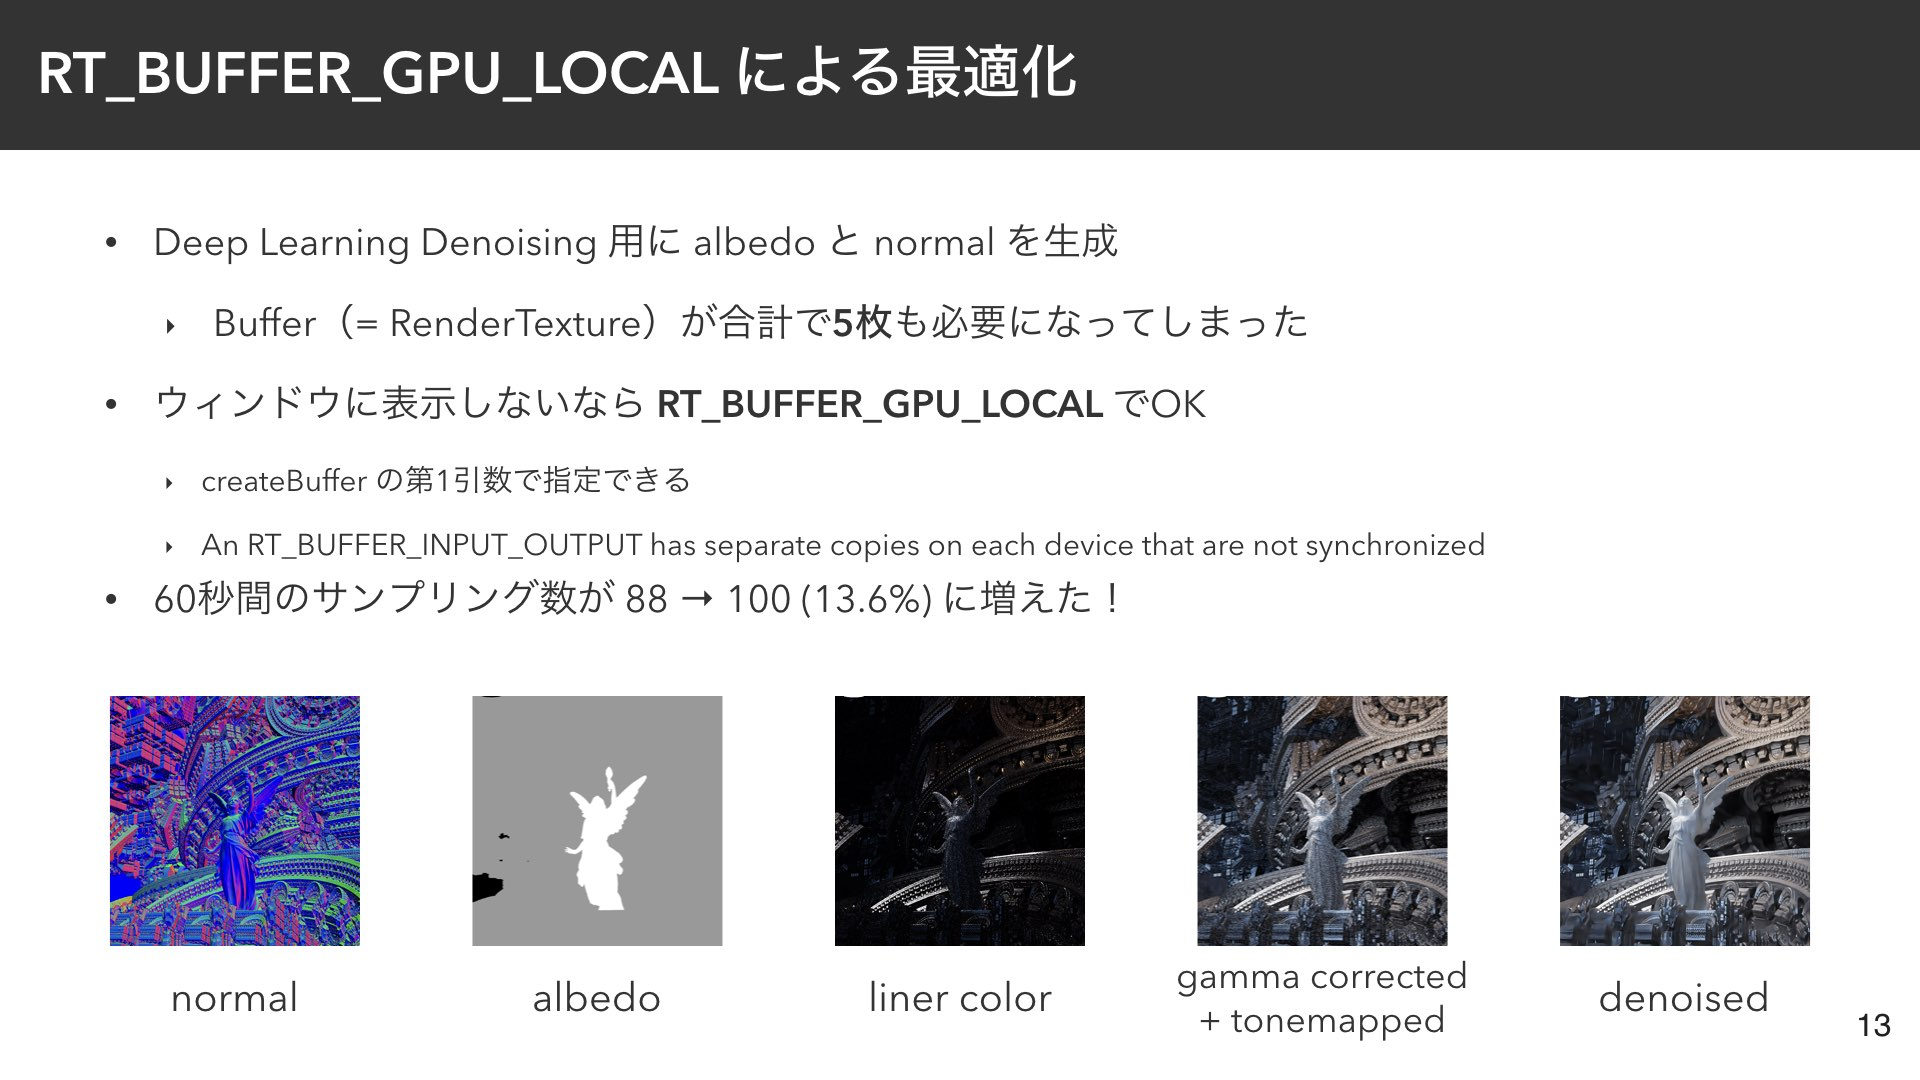 RT_BUFFER_GPU_LOCAL による最適化